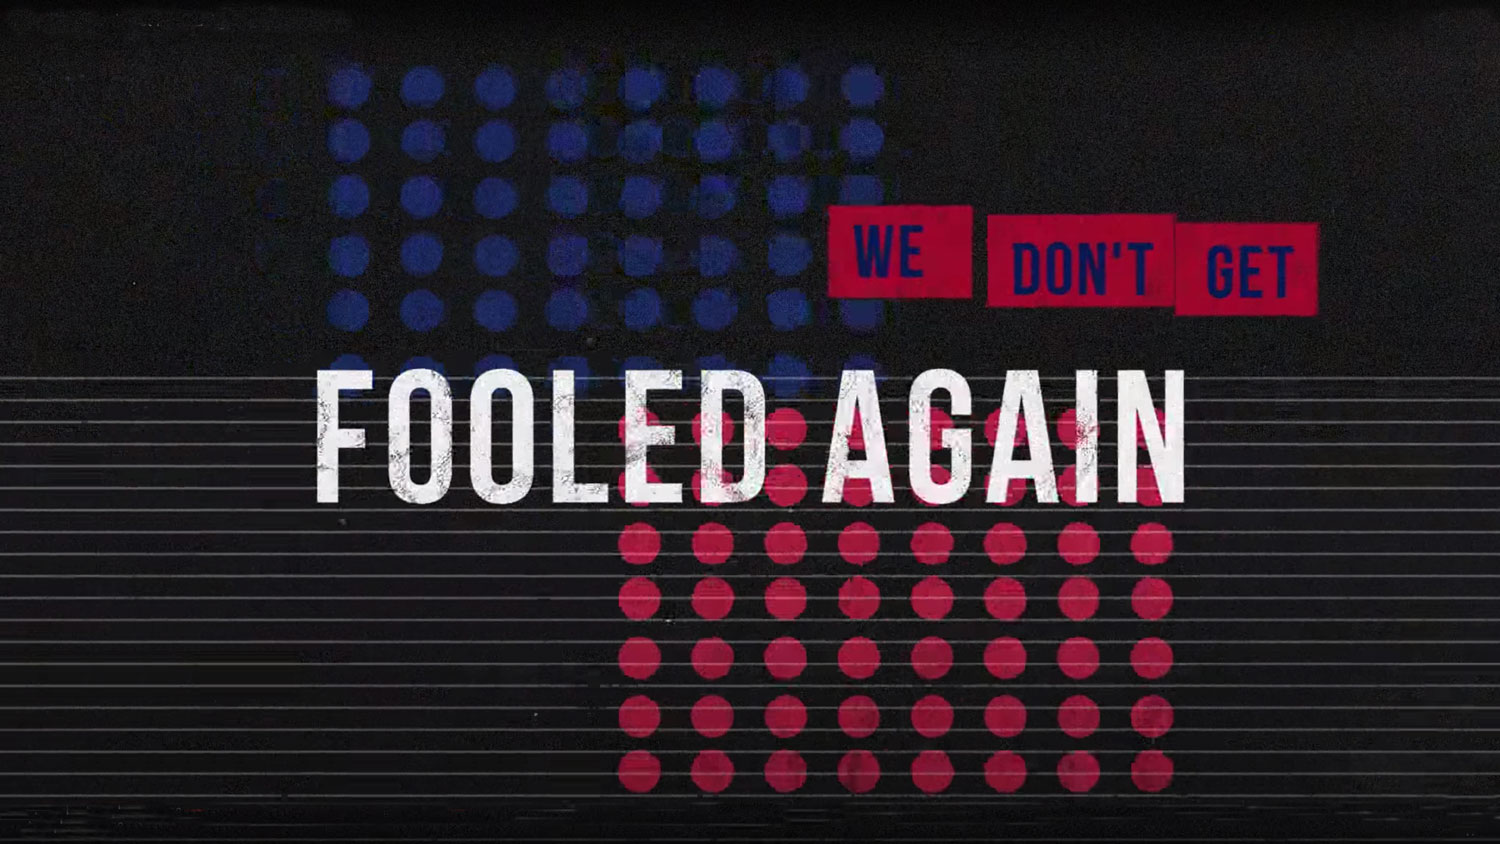 The Who 'Won't Get Fooled Again' with lyrics